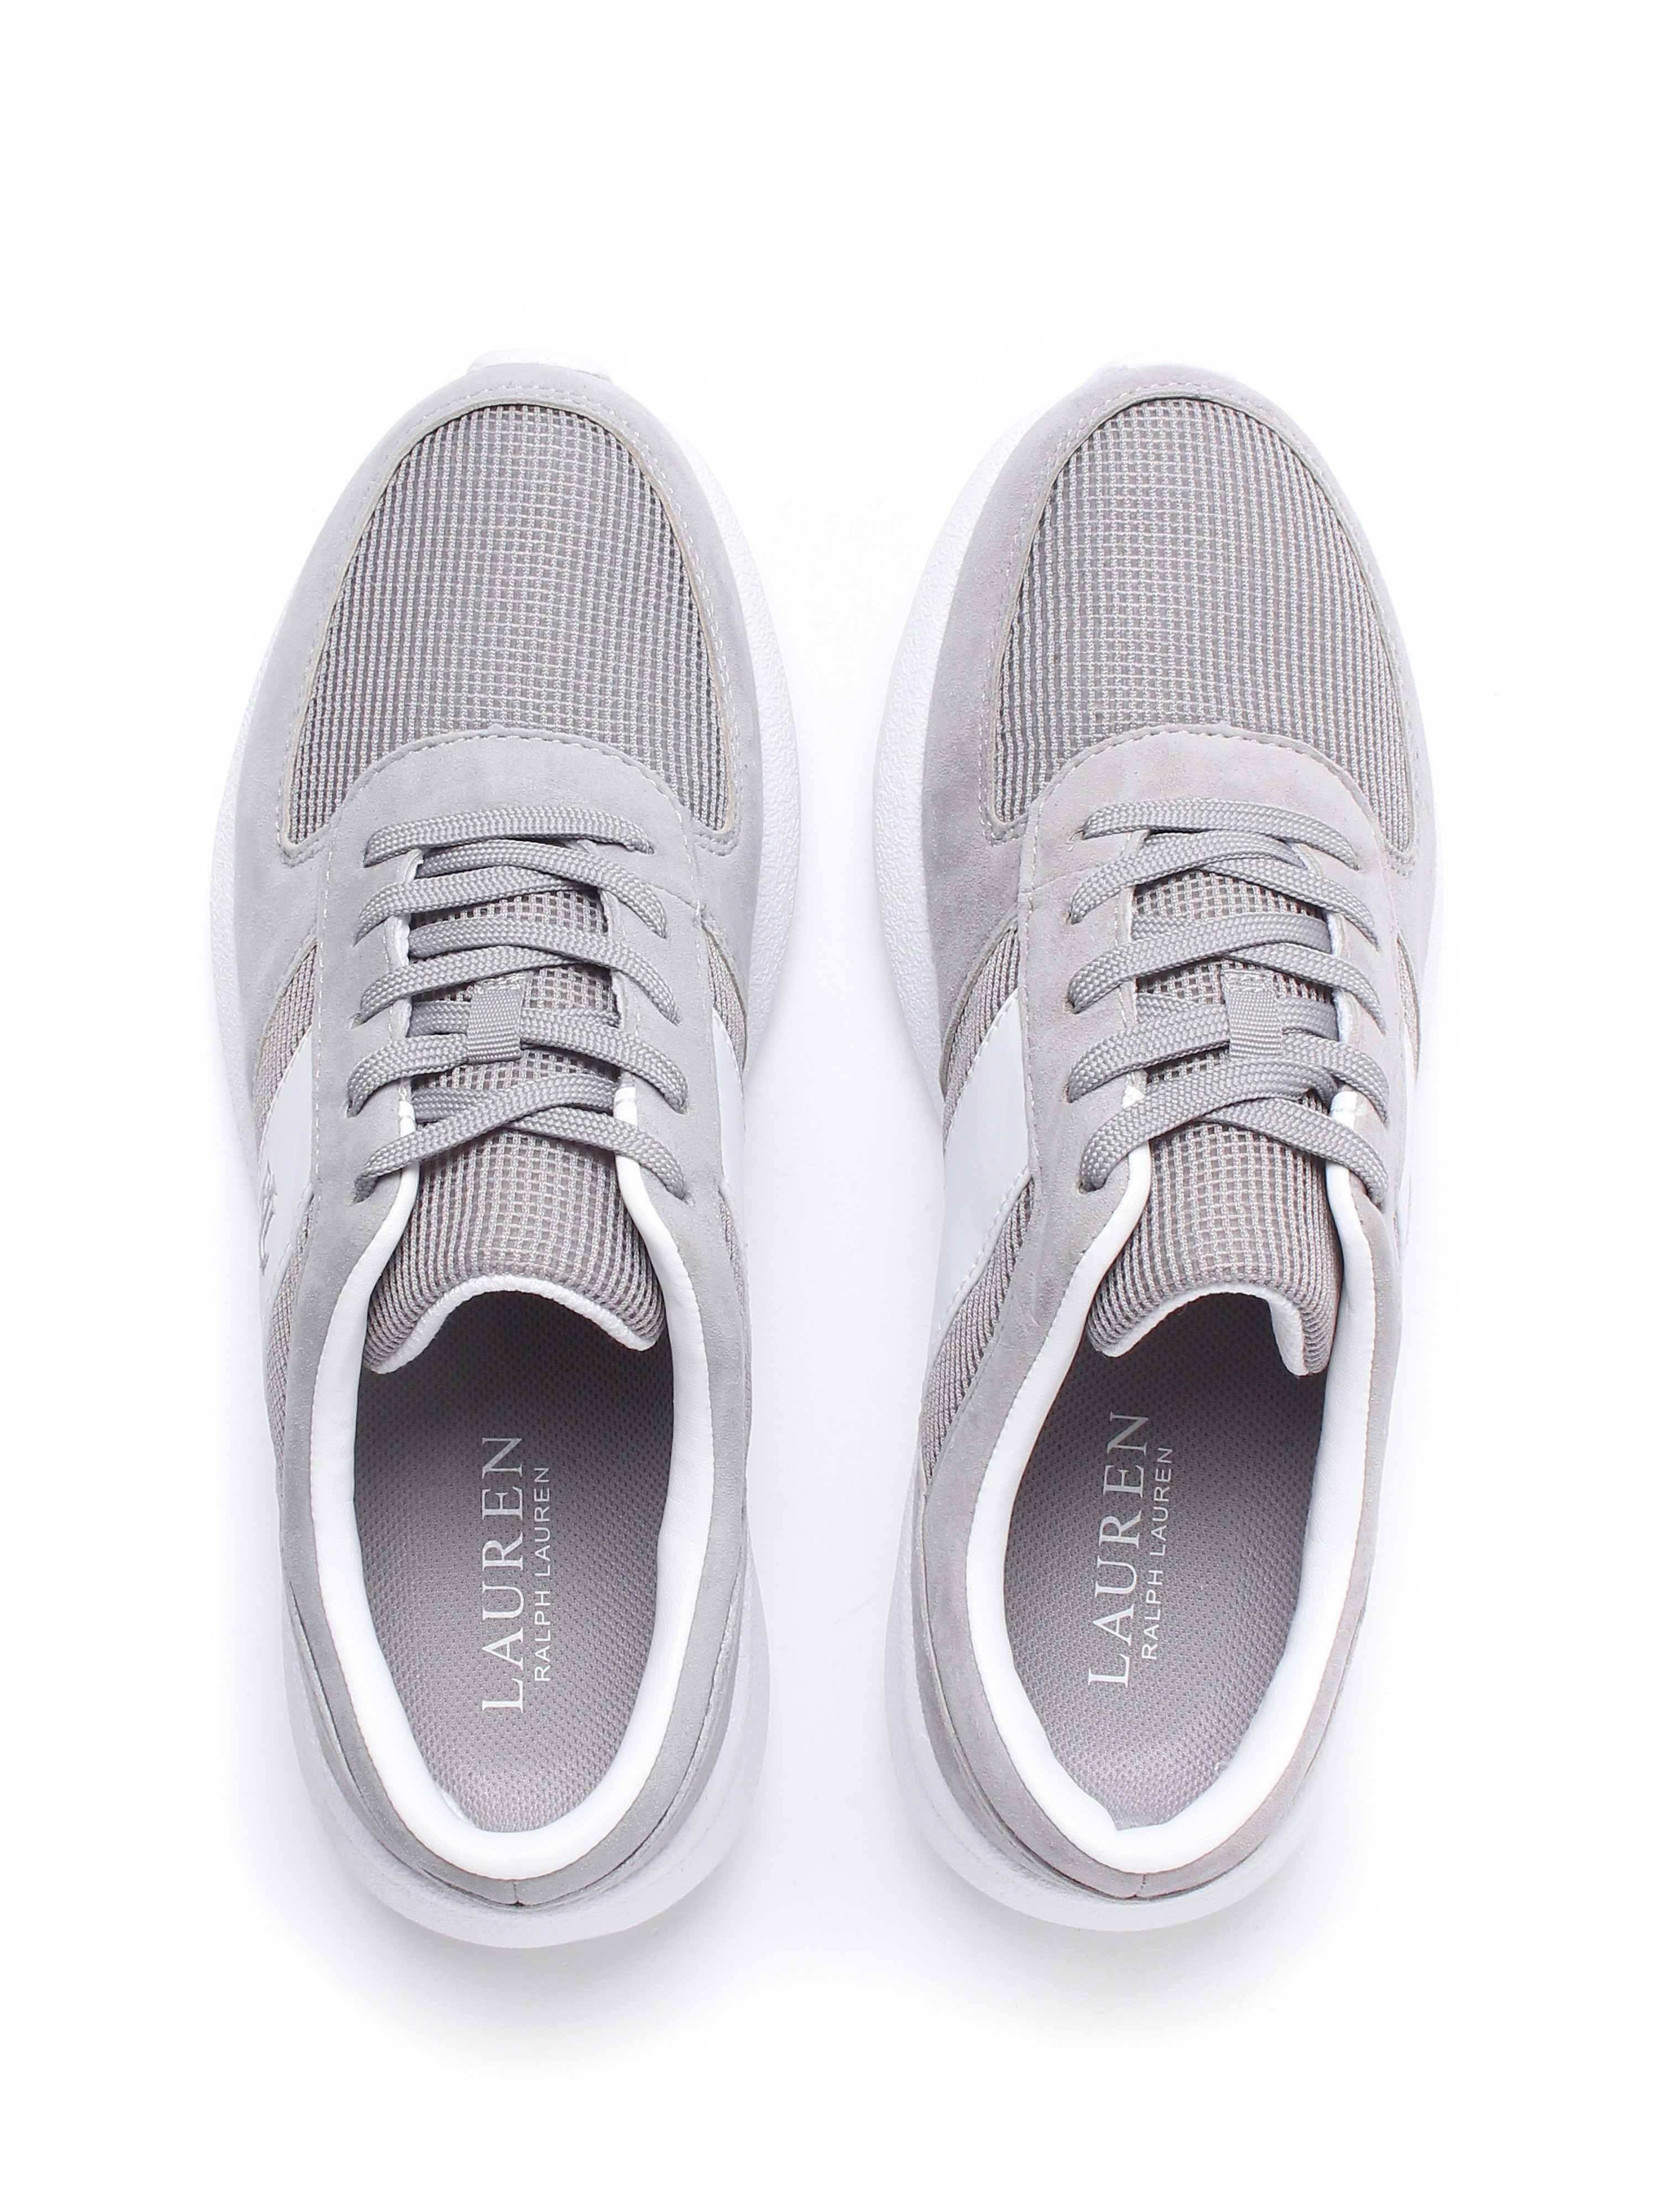 Lauren Ralph Lauren Women's Jay Suede & Mesh Athletic Trainers - Chalk Grey & White